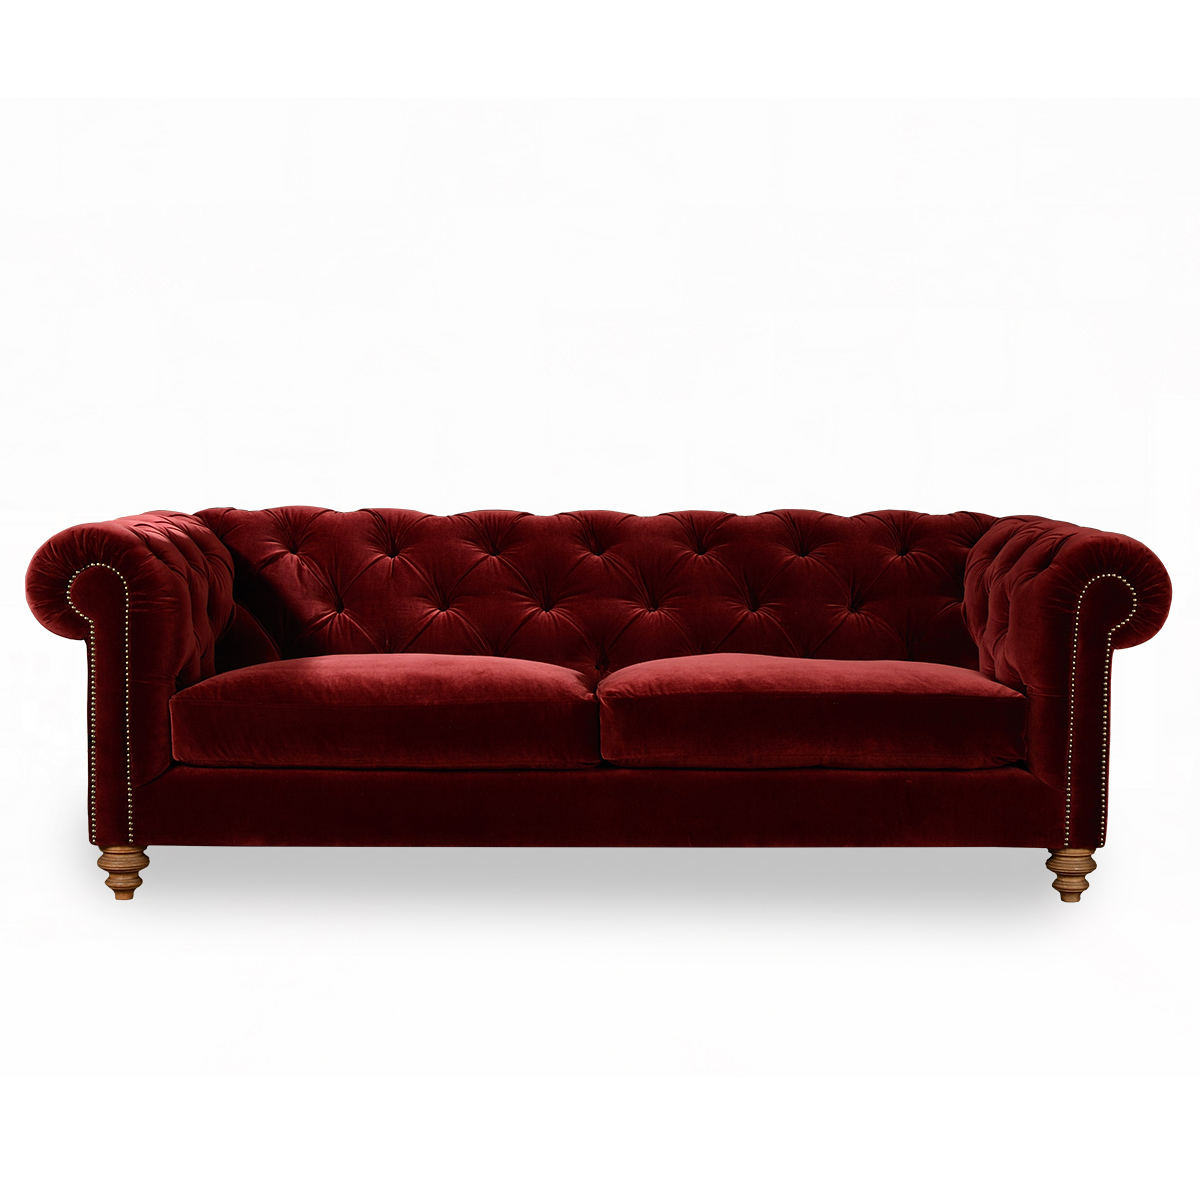 Atmosphère Et Chesterfield Chesterfield Et Canapé LilleMeubles Canapé LilleMeubles 3q5ARcL4j